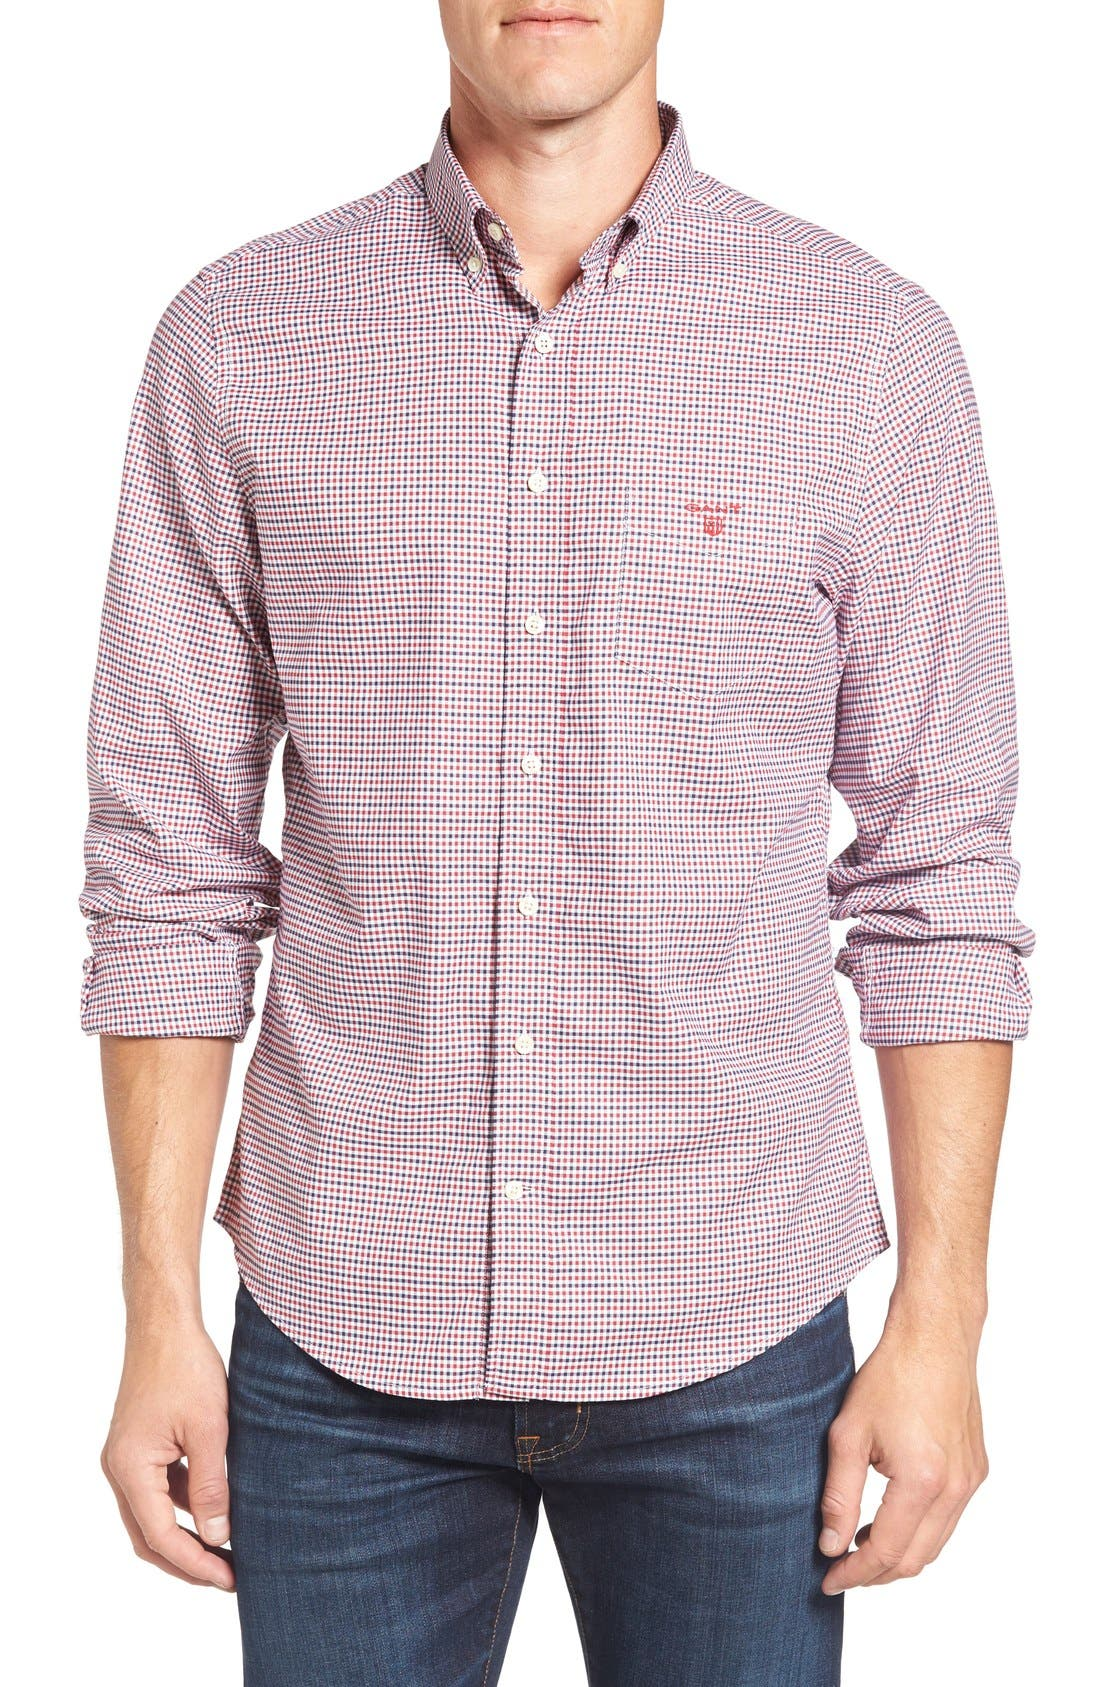 Gant Gingham Fitted Sport Shirt